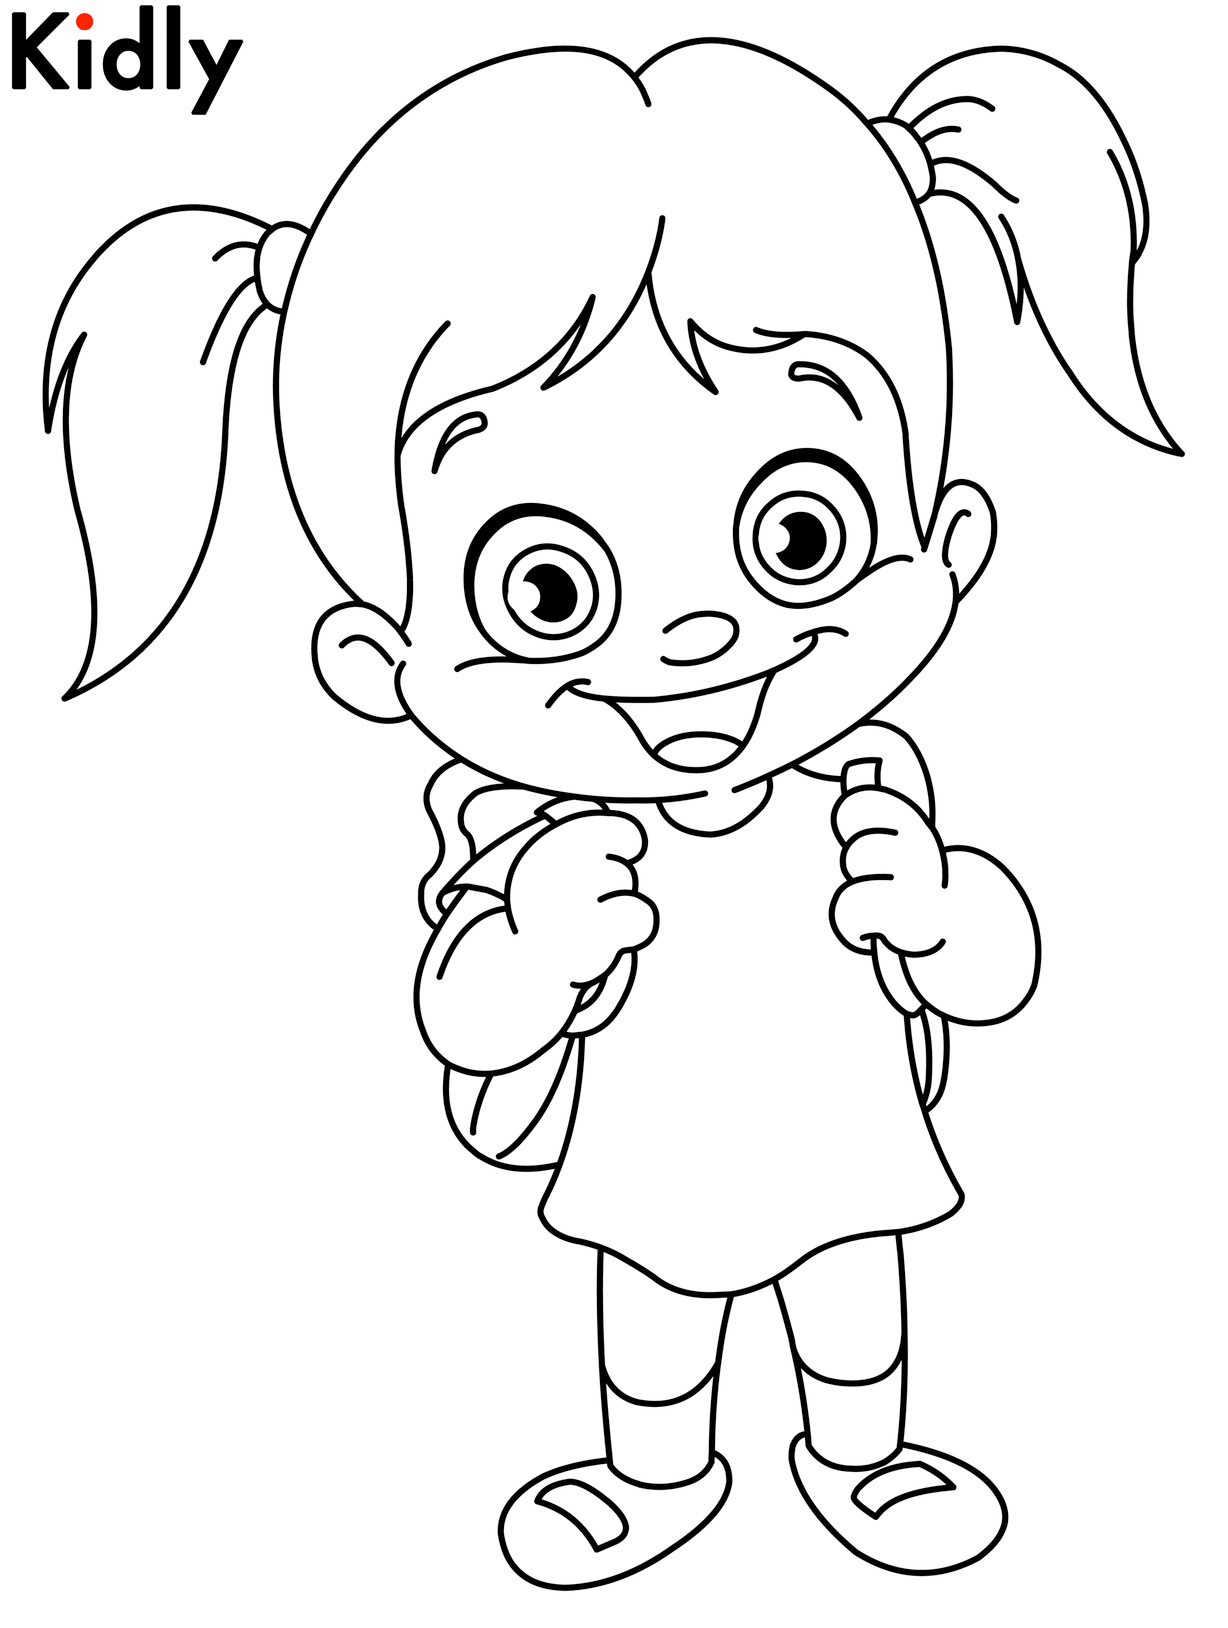 Little Boy And Girl Coloring Pages at GetDrawings.com | Free for ...